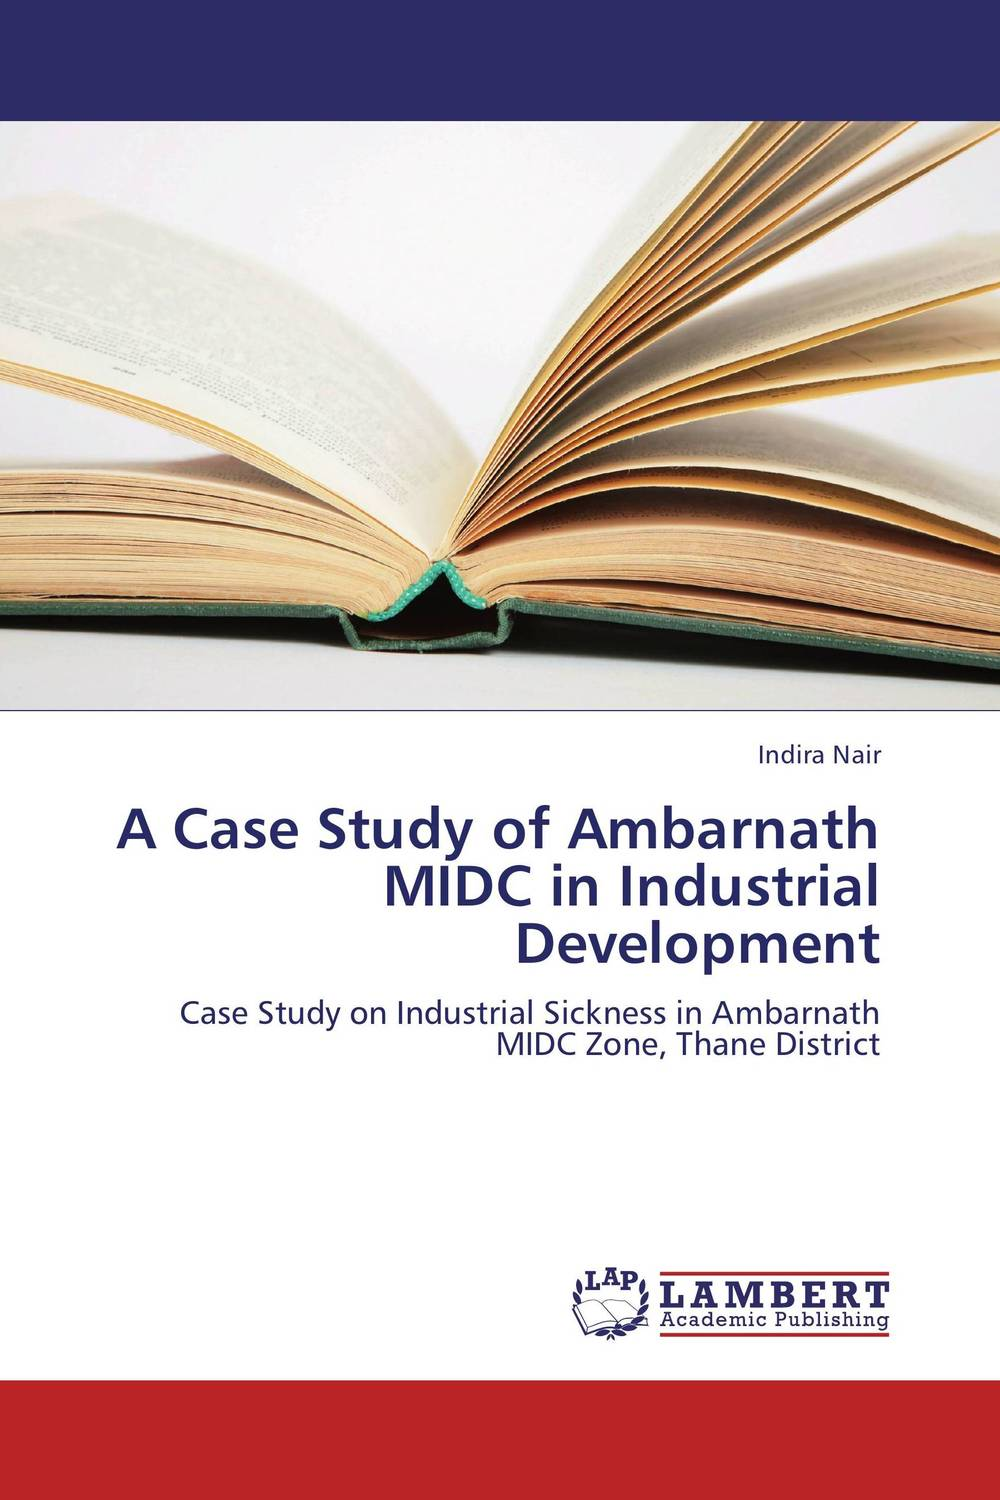 A Case Study of Ambarnath MIDC in Industrial Development